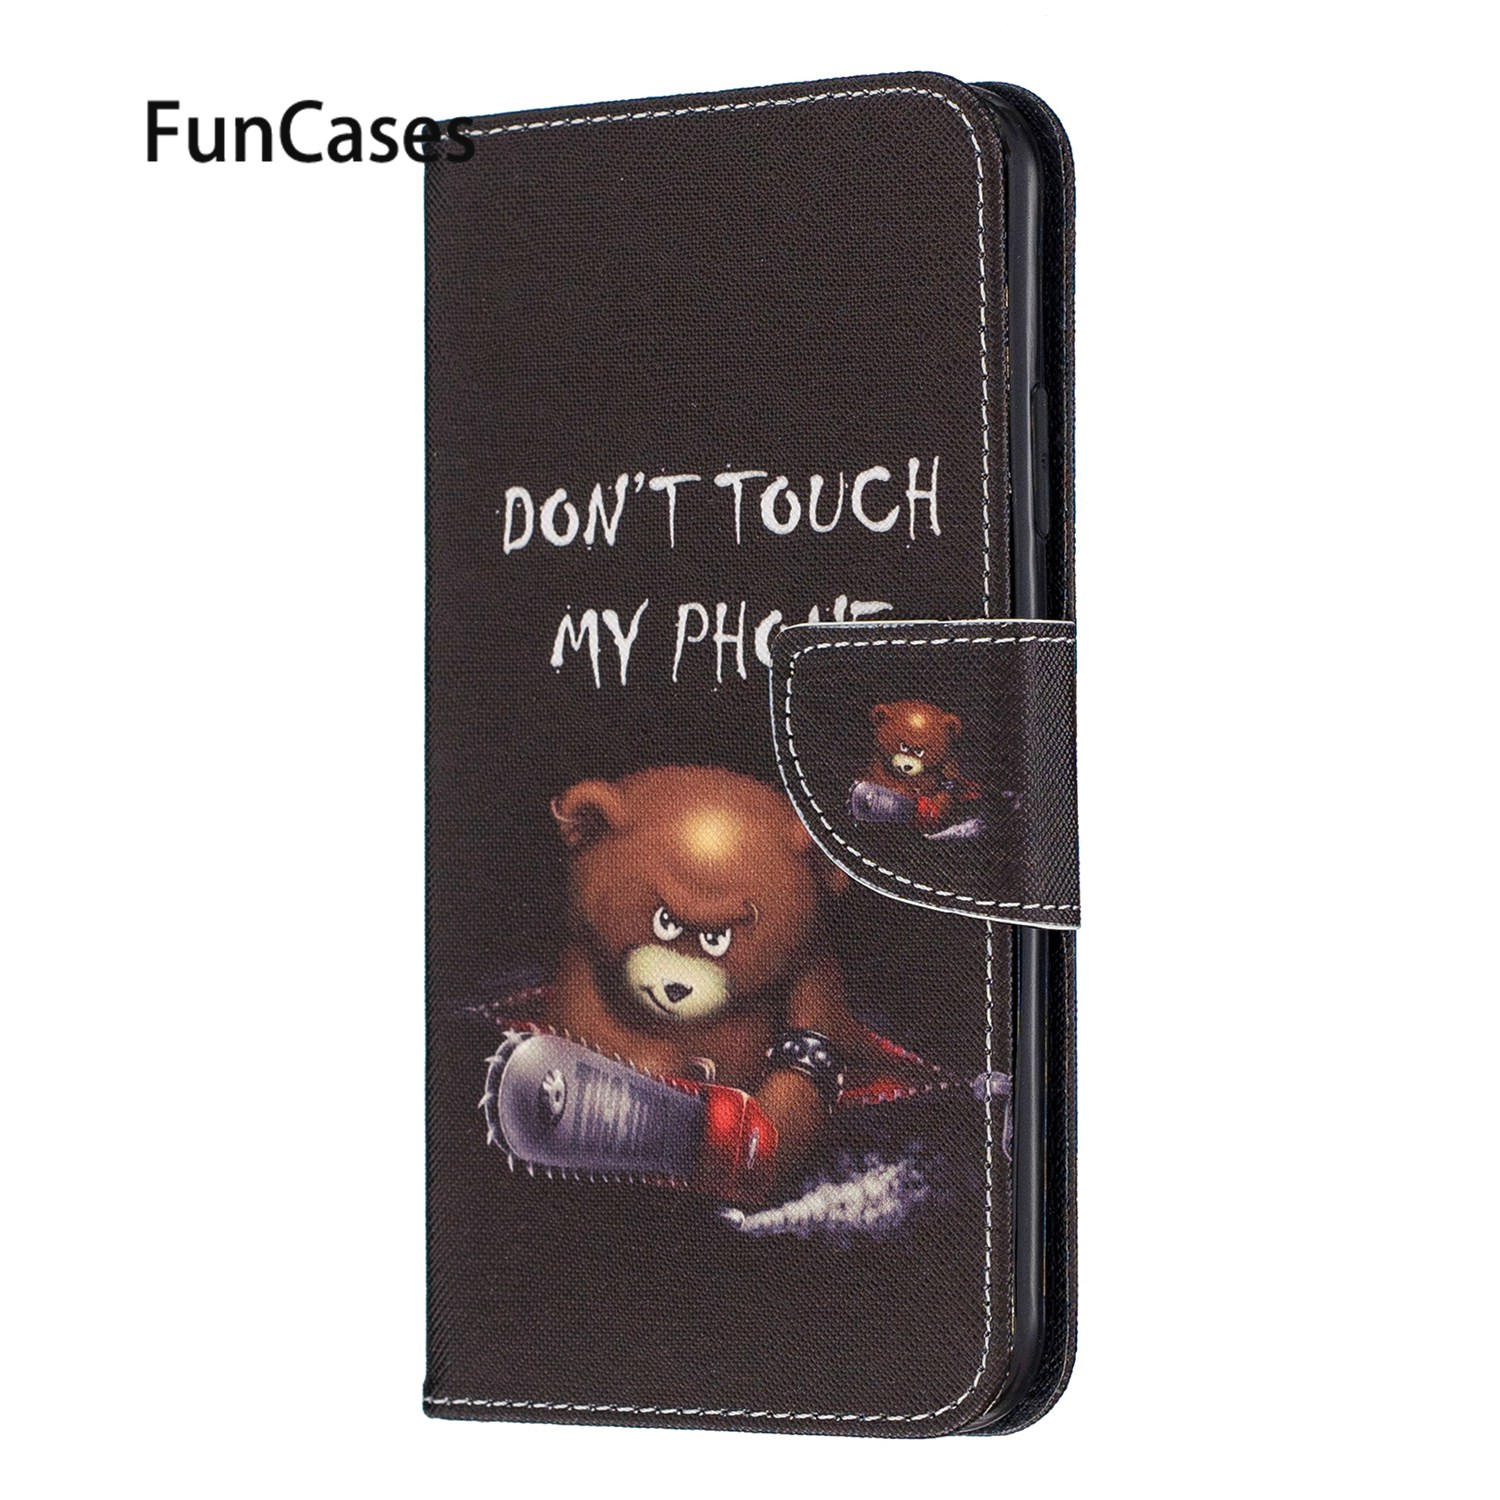 Deer Cell Phones Cases For <font><b>Samsung</b></font> A50 PU Leather Book Case sFor Cellular <font><b>Samsung</b></font> Galaxy A50S A30S A51 A40 A70 A20 <font><b>A30</b></font> A71 A10 image